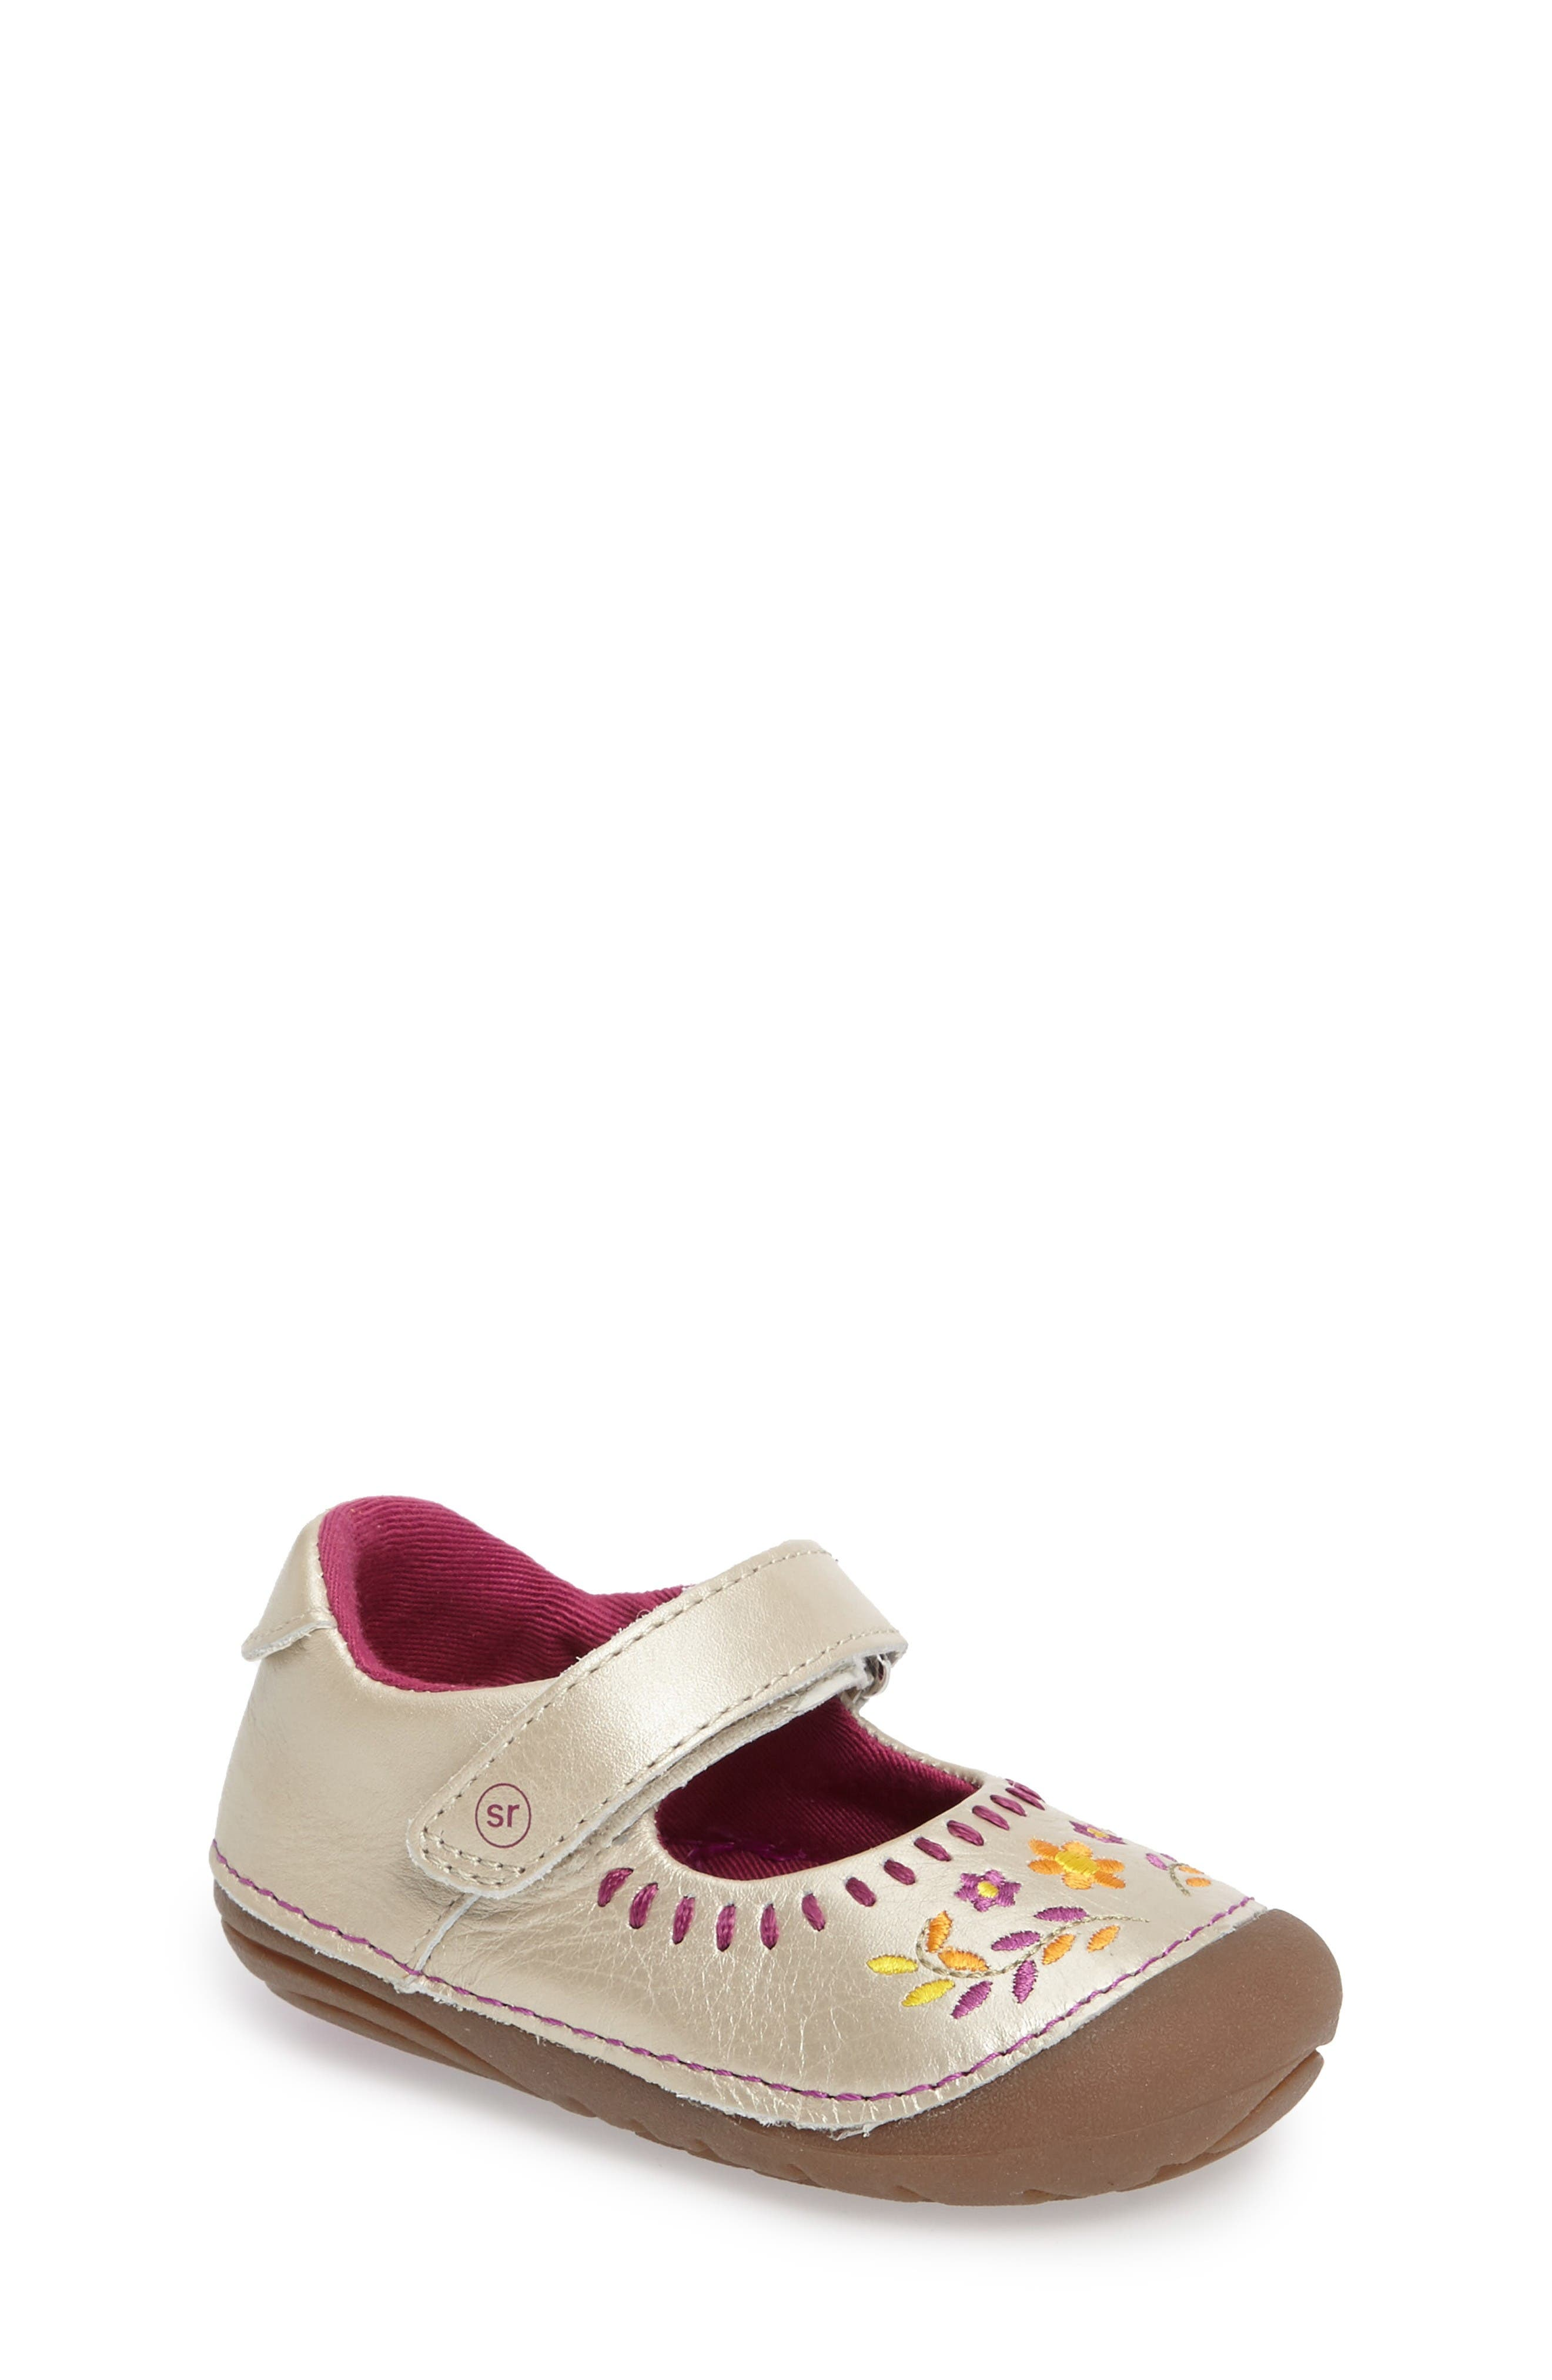 Main Image - Stride Rite Atley Flower Embroidered Mary Jane (Baby & Walker)